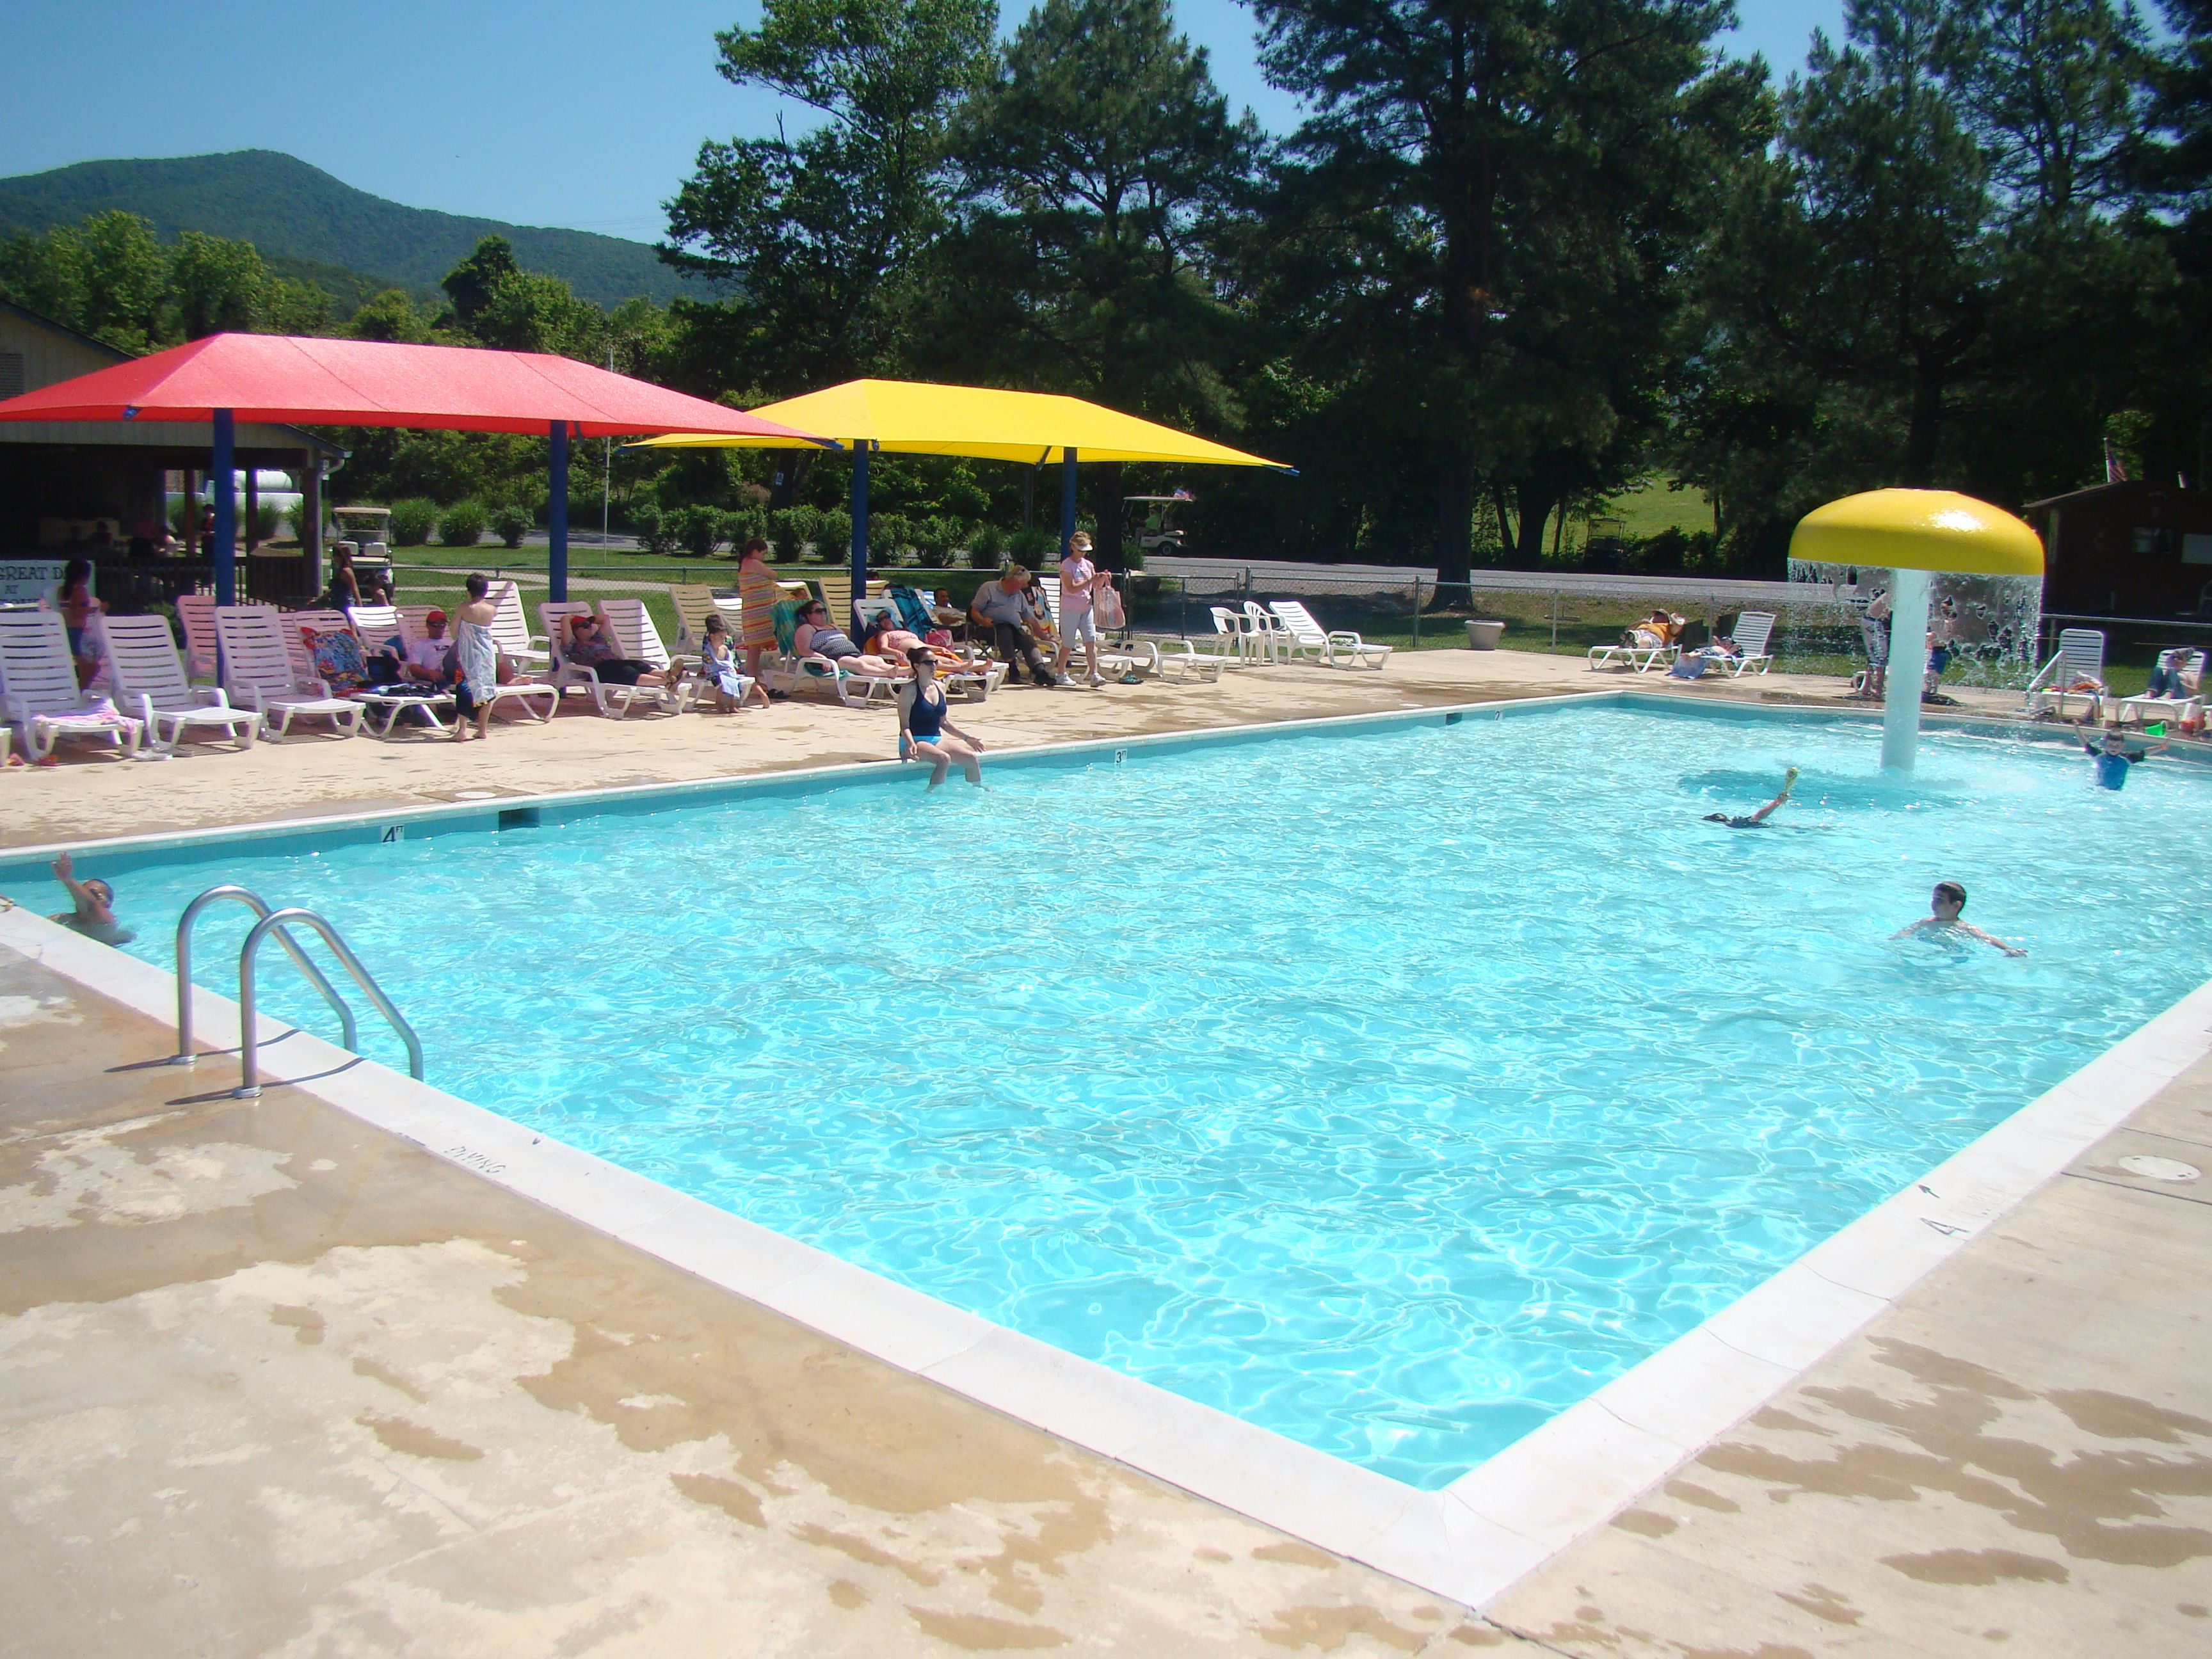 One Of Our Pools With The New Shade Umbrellas Come Hang In The Shade With Yogi Bear Boo Boo And Cindy Bear Shade Umbrellas Yogi Bear Jellystone Park